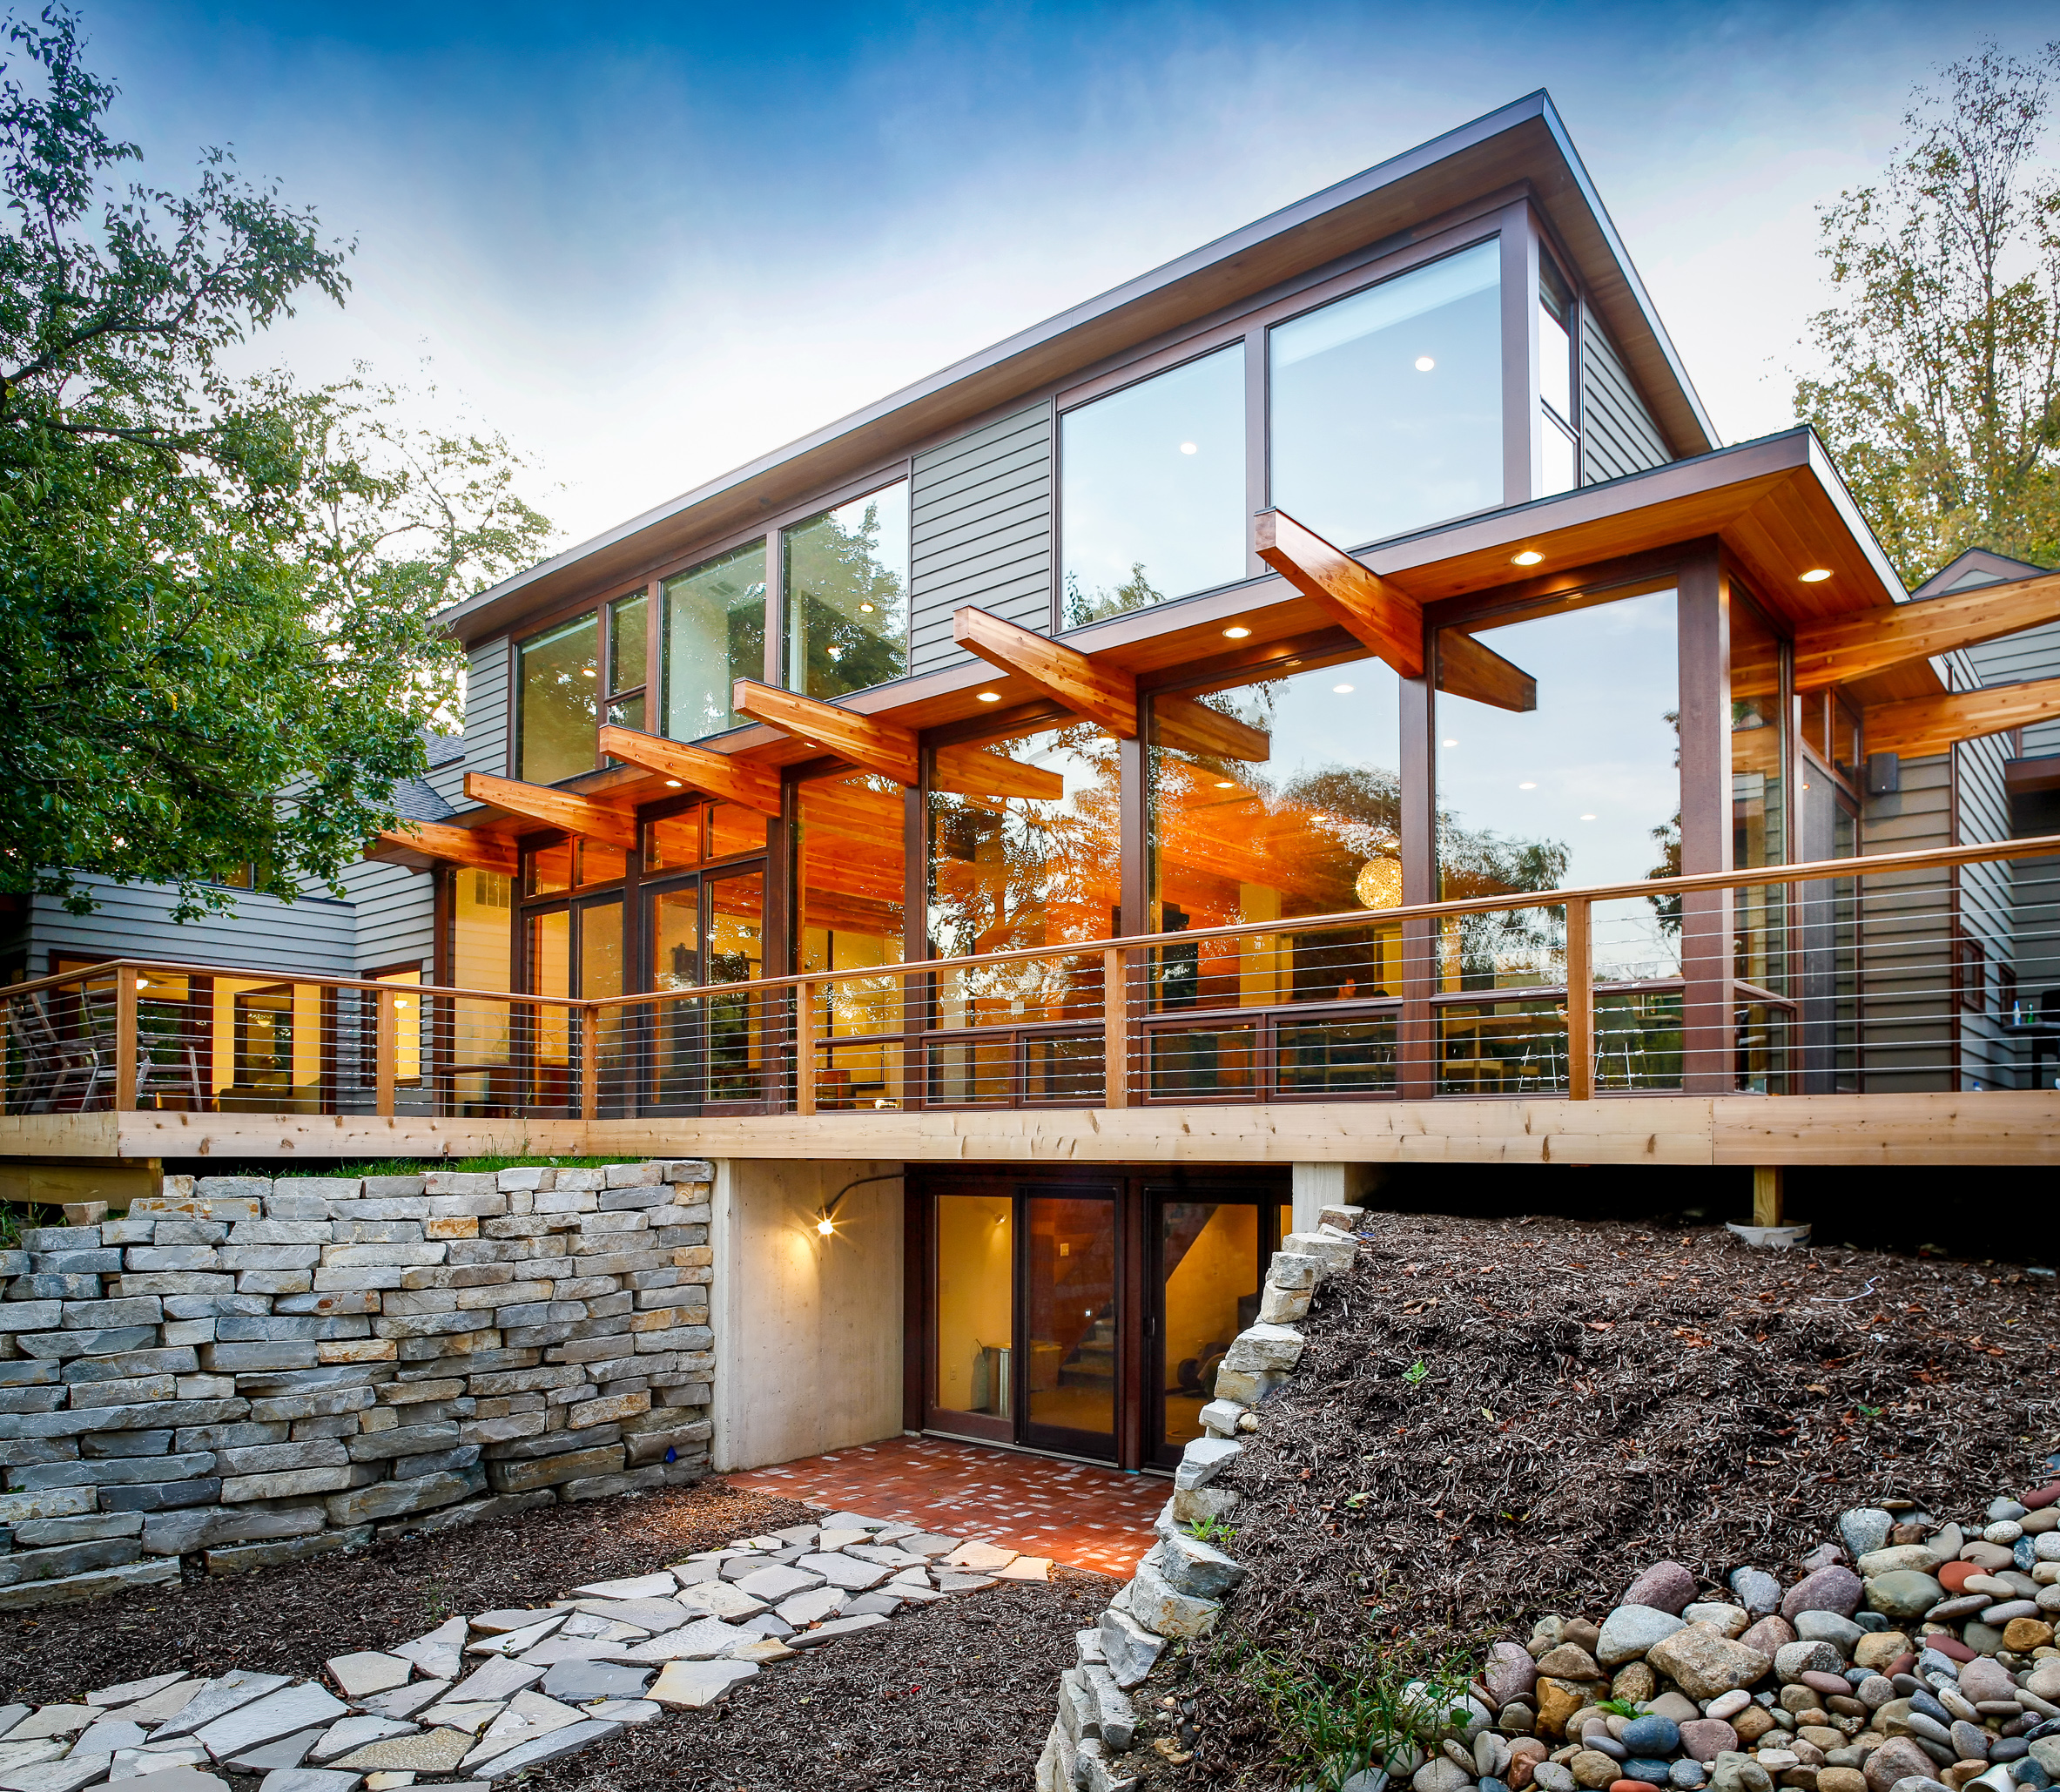 CARLSON RESIDENCE GLASSEY VIEW - OOMBRA ARCHITECTS